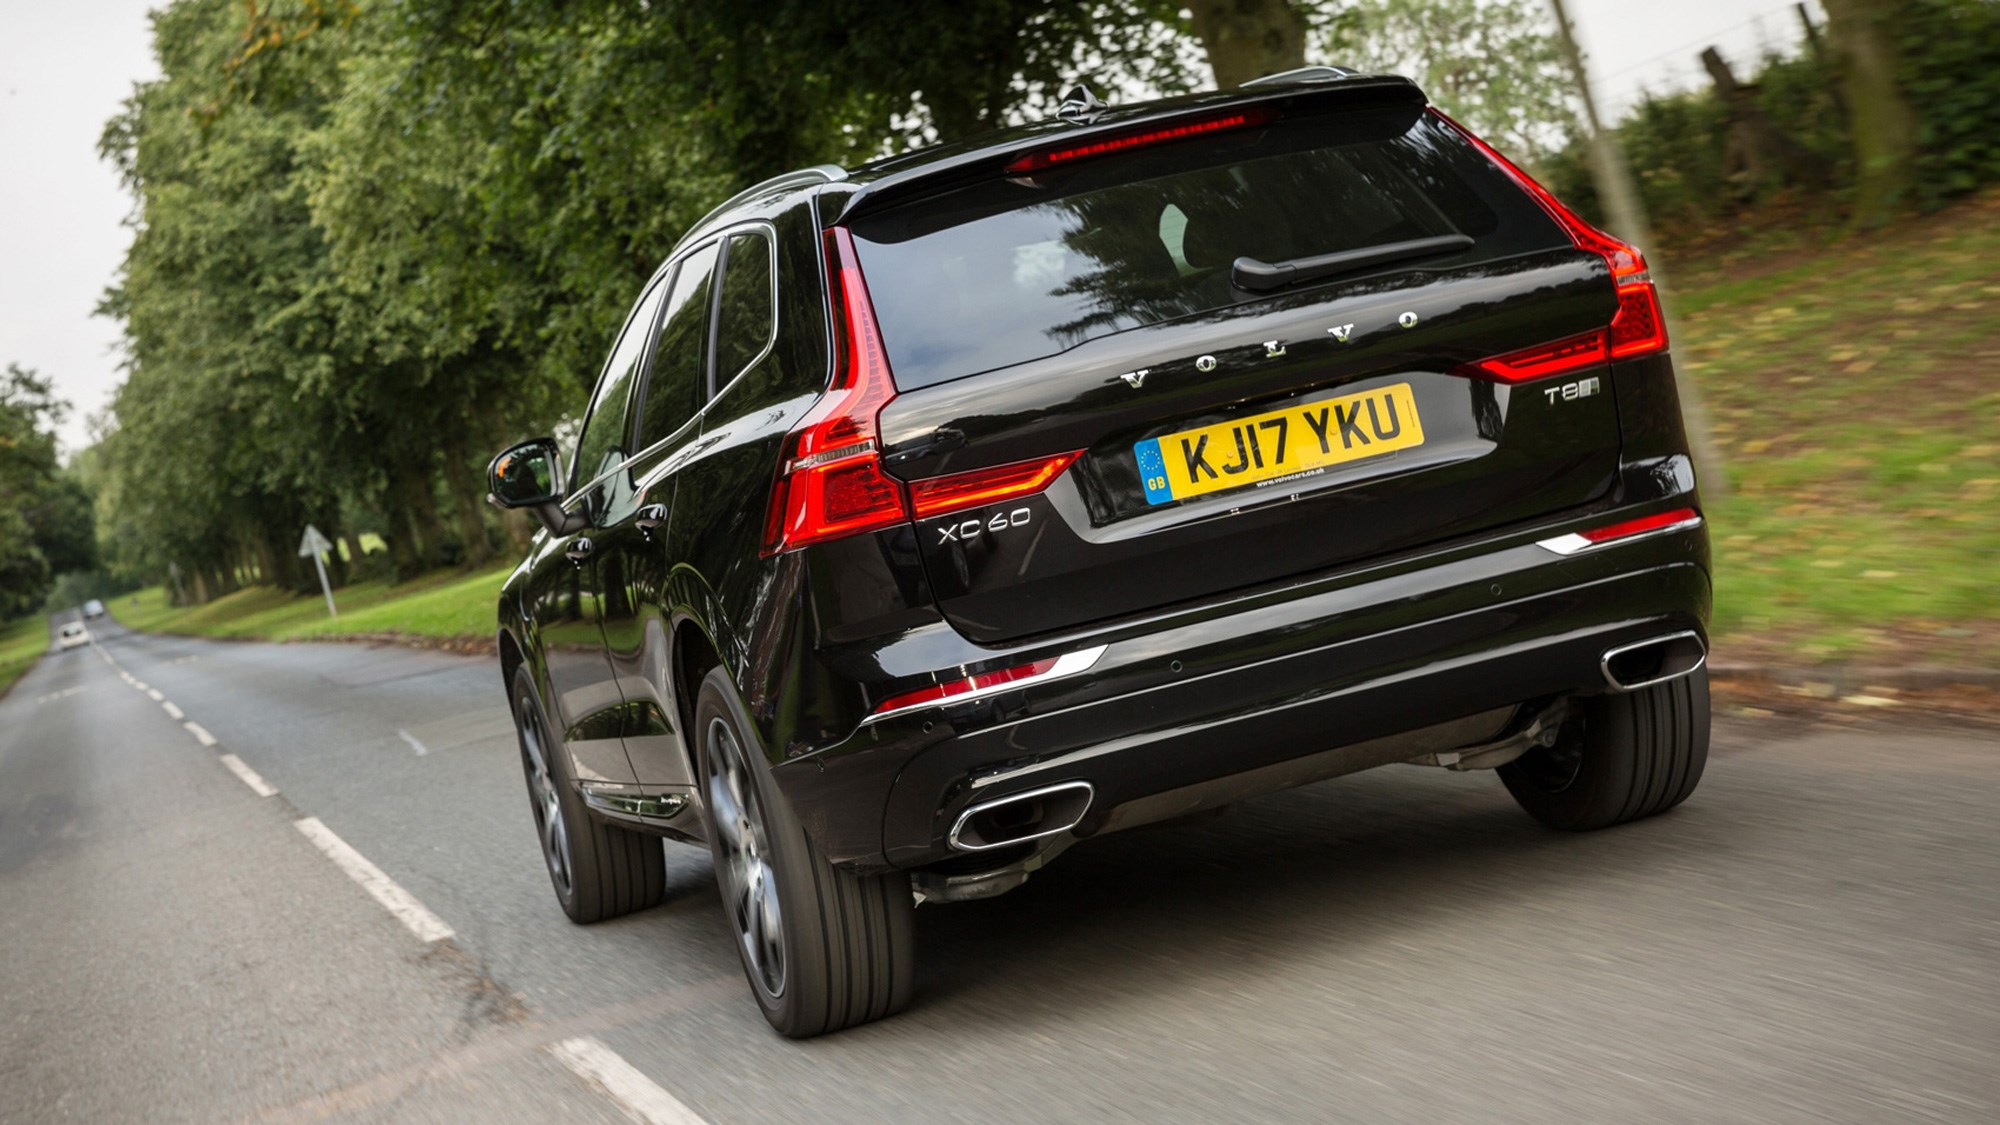 Volvo XC60 hybrid review - T8 Twin Engine plug-in driven, rear view, black, driving, 2020